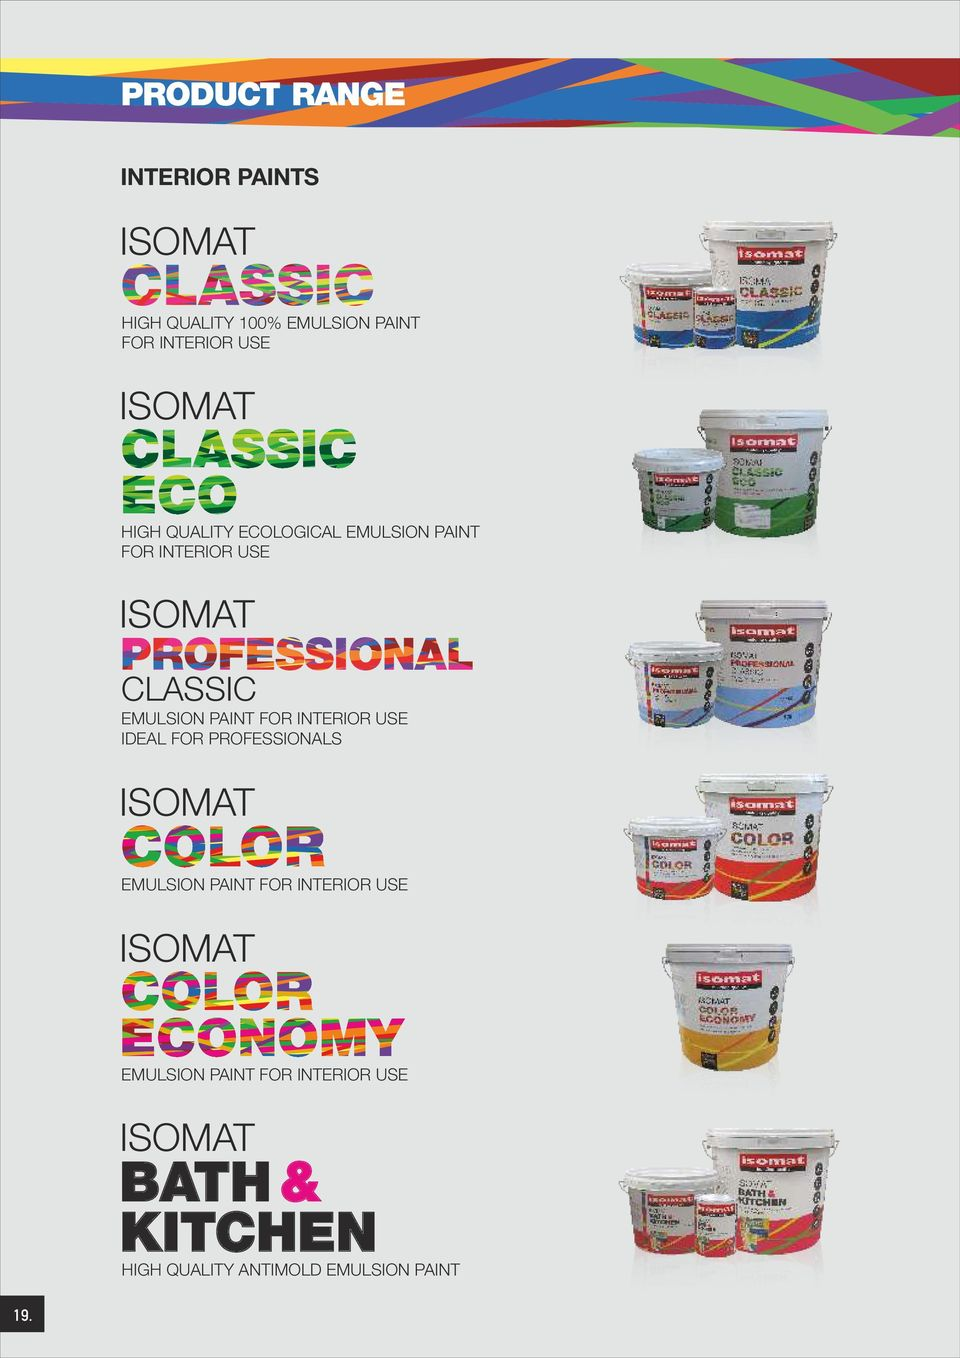 PAINT FOR INTERIOR USE IDEAL FOR PROFESSIONALS ISOMAT EMULSION PAINT FOR INTERIOR USE